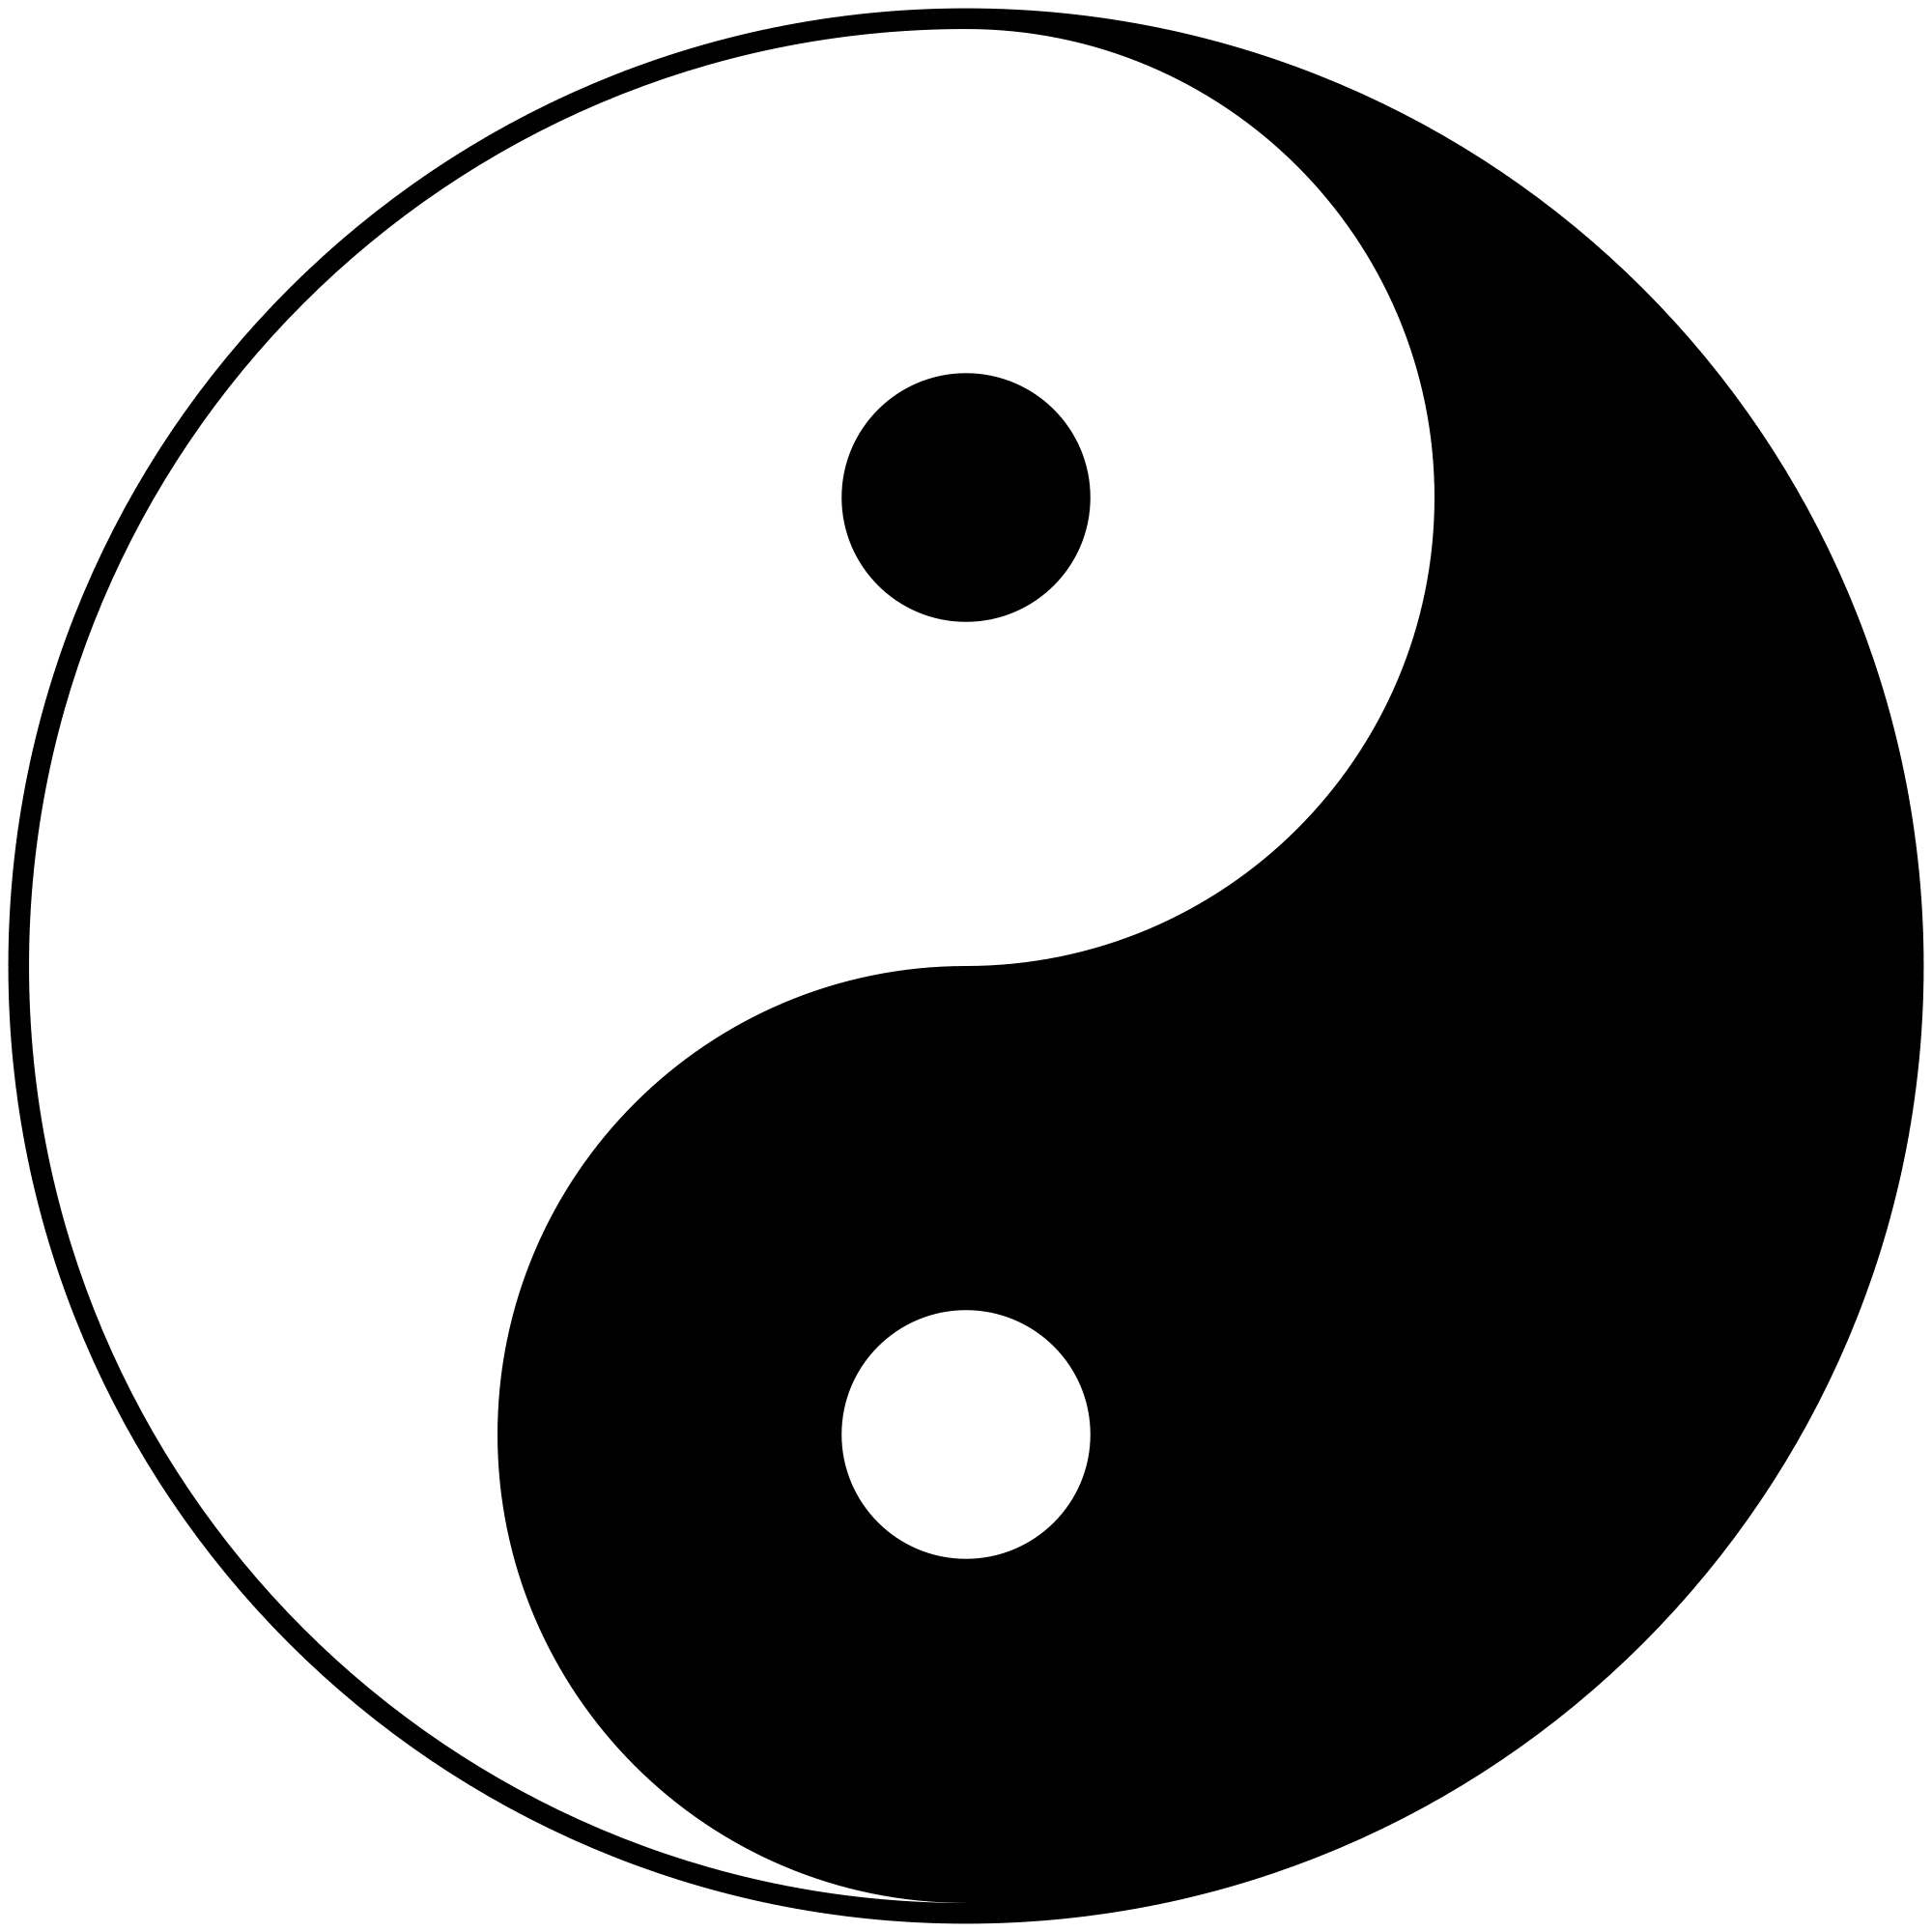 philosophy and theory of yin and The philosophy of yin and yang philosophy and theory of yin and yang introduction four main aspects yin and yang theory and history yin and yang in medicine.